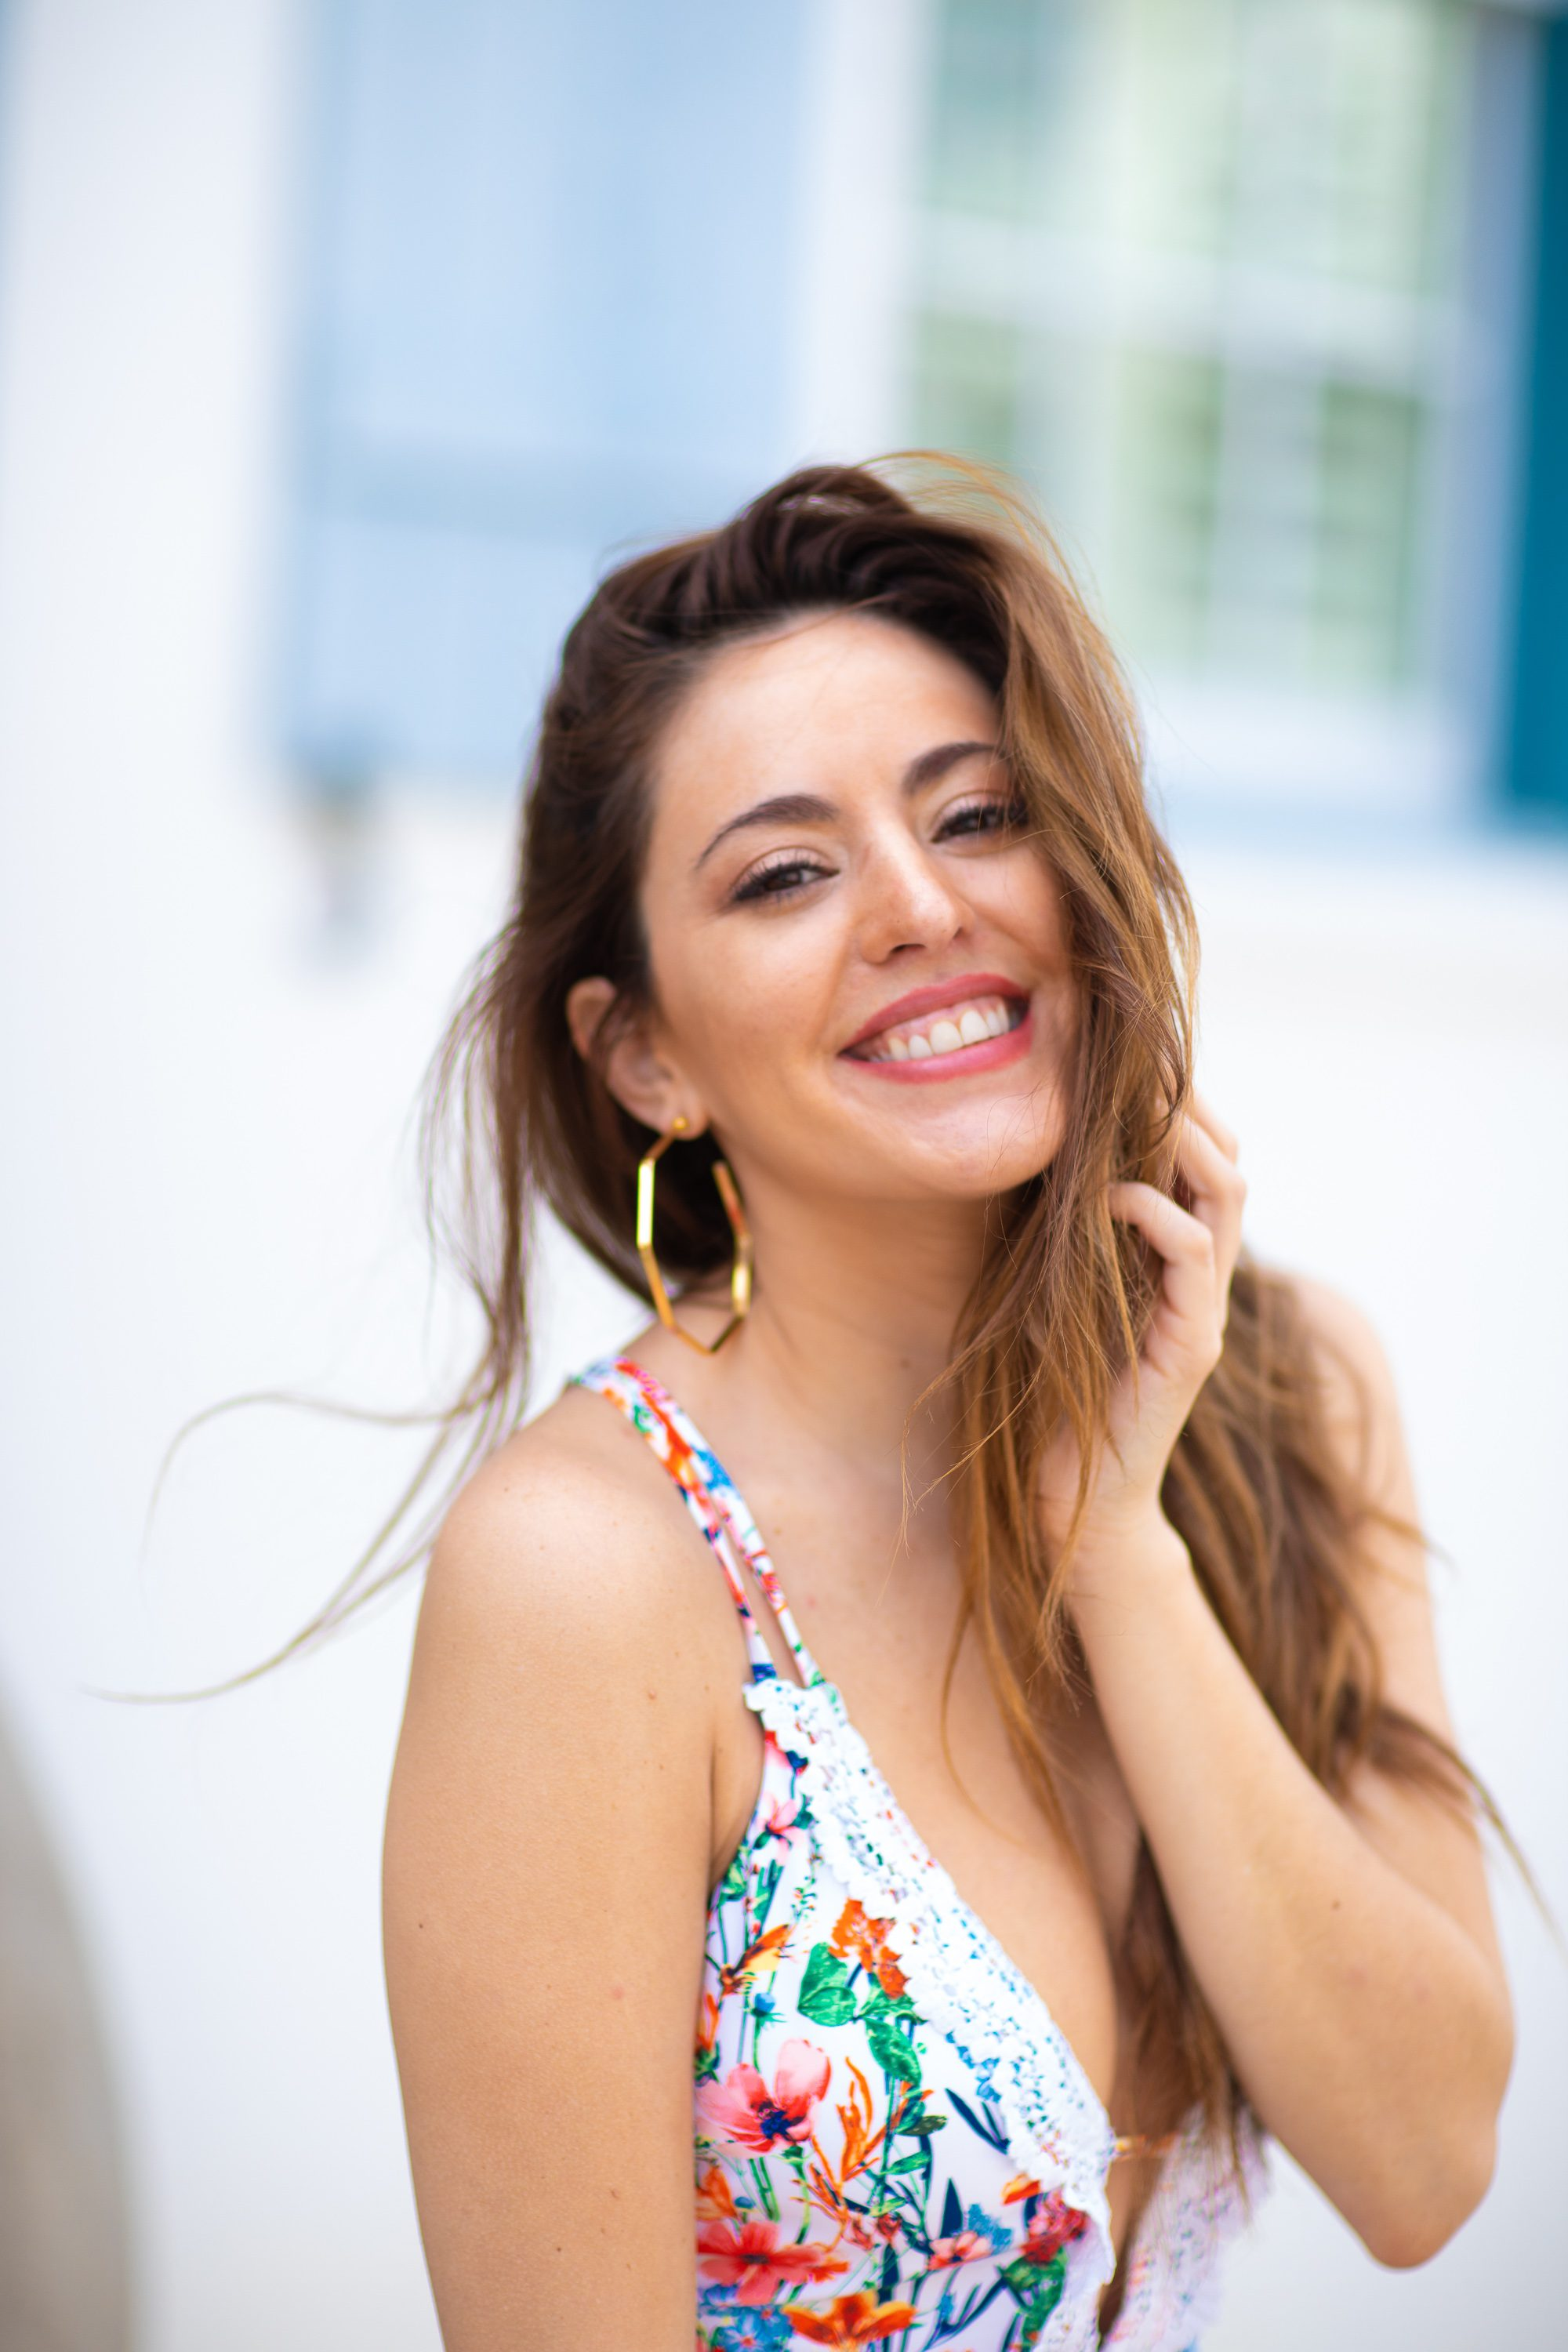 30A, alys beach, floral one piece bathing suit, spring break outfit ideas, how to wear a bathing suit as a bodysuit, day to night swimwear, open back bathing suits, weekend trips from Atlanta